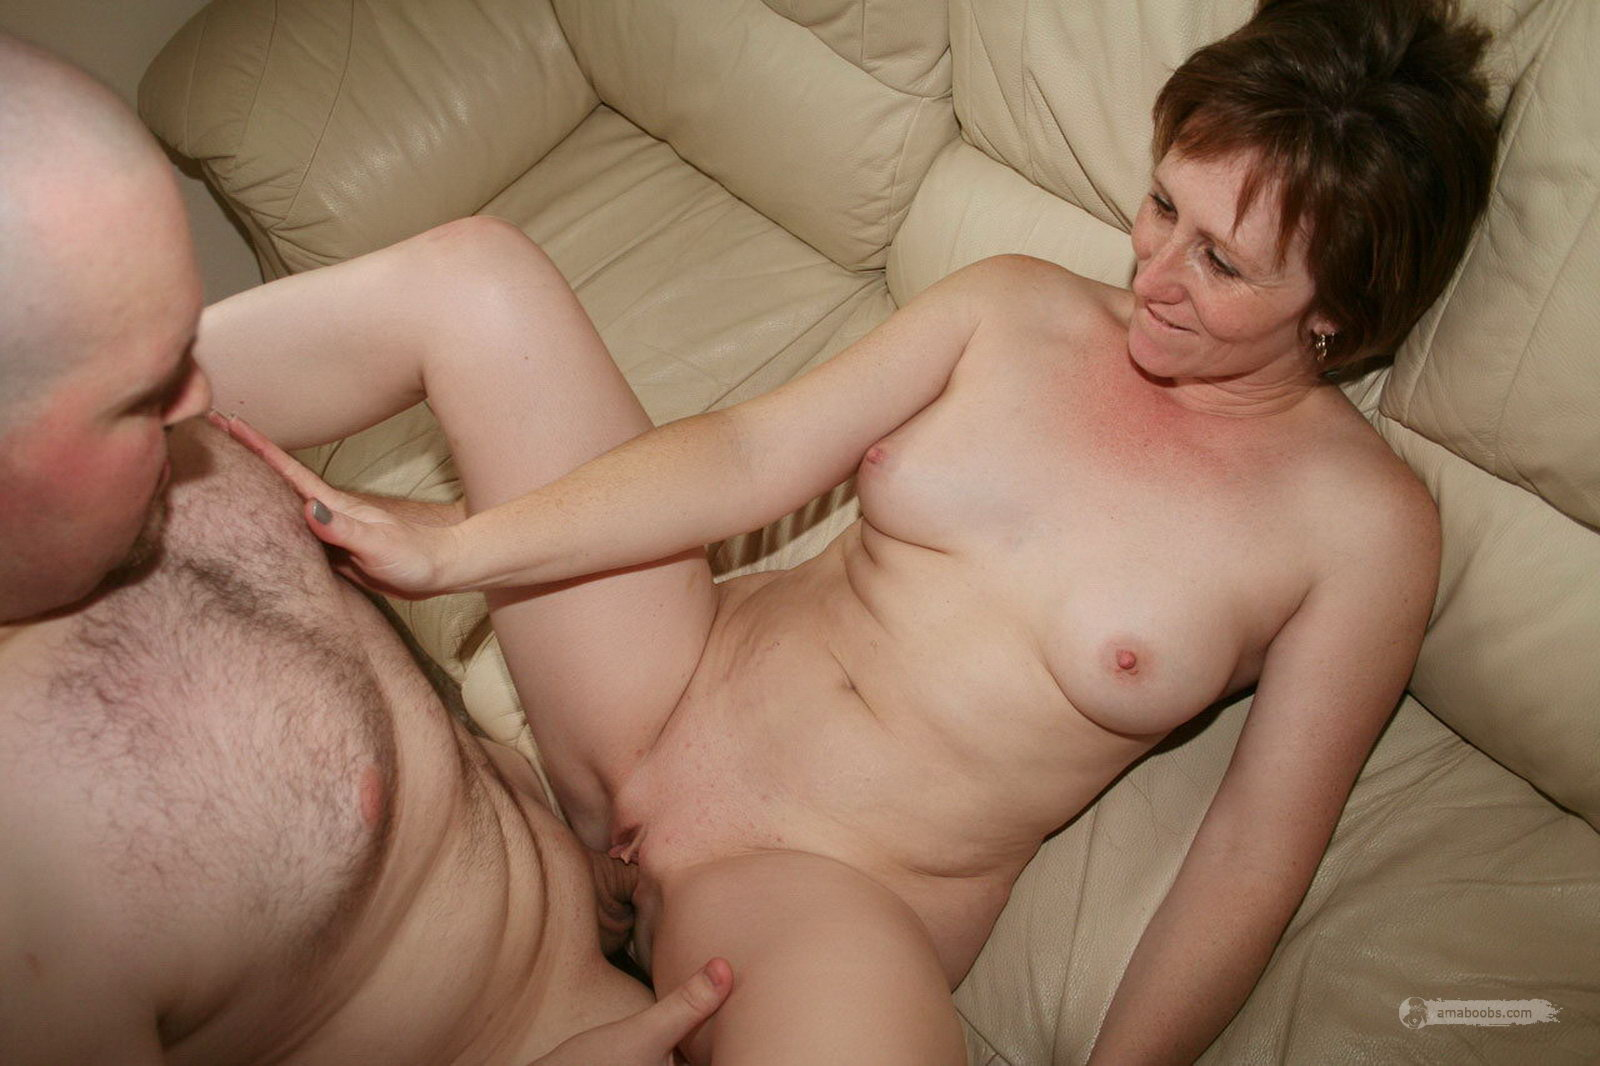 Mature Mom Porn Pics Will Show You The Benefits Of Hot Sex -7302